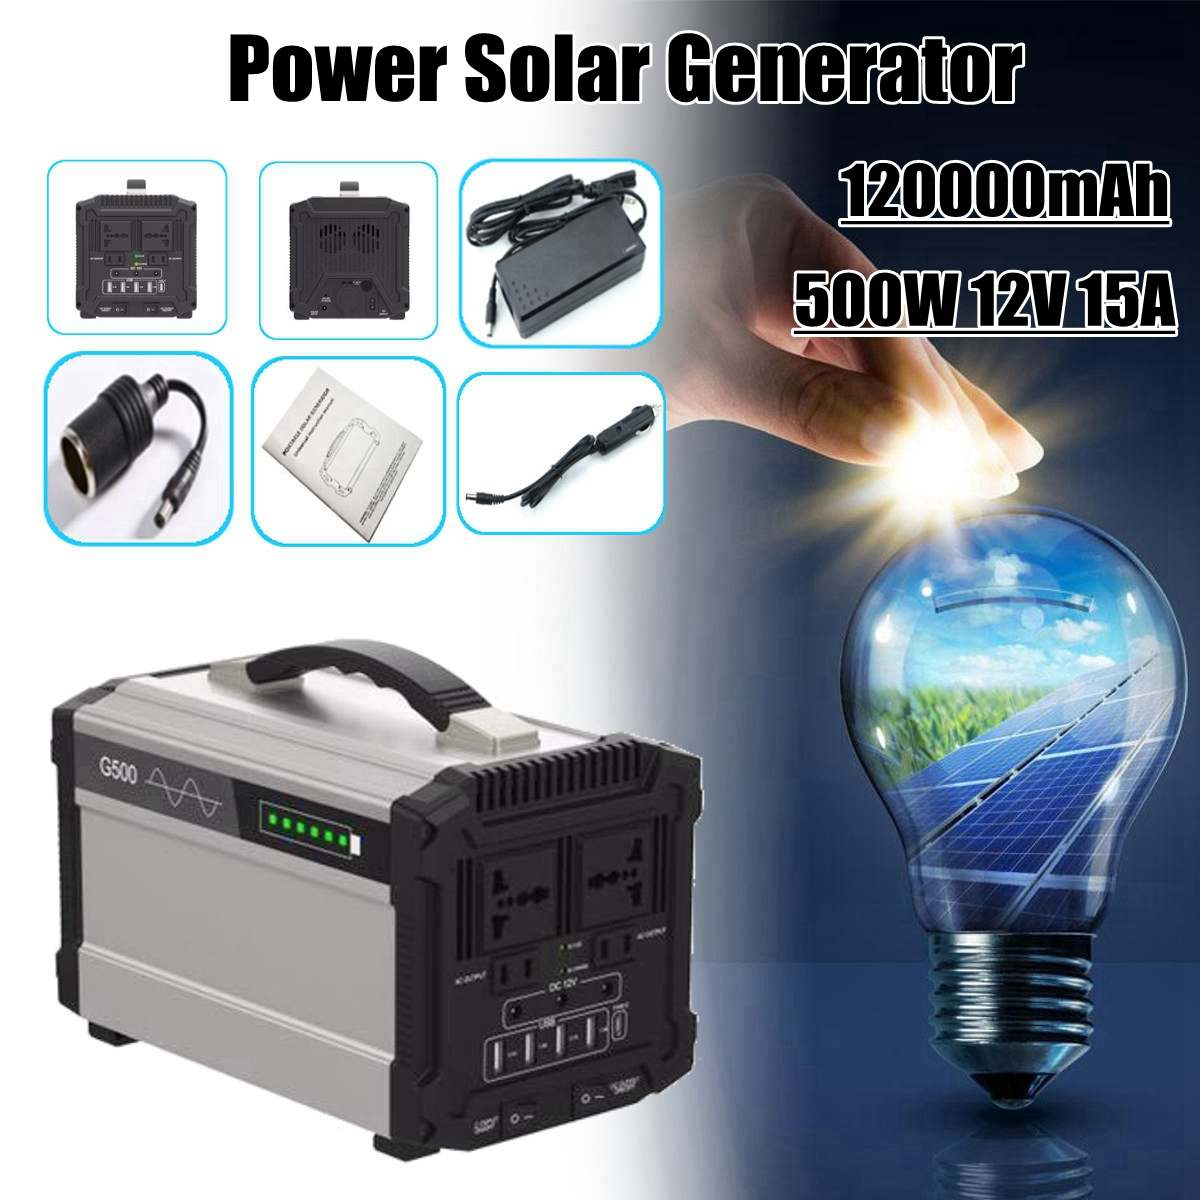 444Wh 120000mAh 500W 12V 15A Energy Storage Home Outdoor Portable Power Solar Generator Faster Charge444Wh 120000mAh 500W 12V 15A Energy Storage Home Outdoor Portable Power Solar Generator Faster Charge